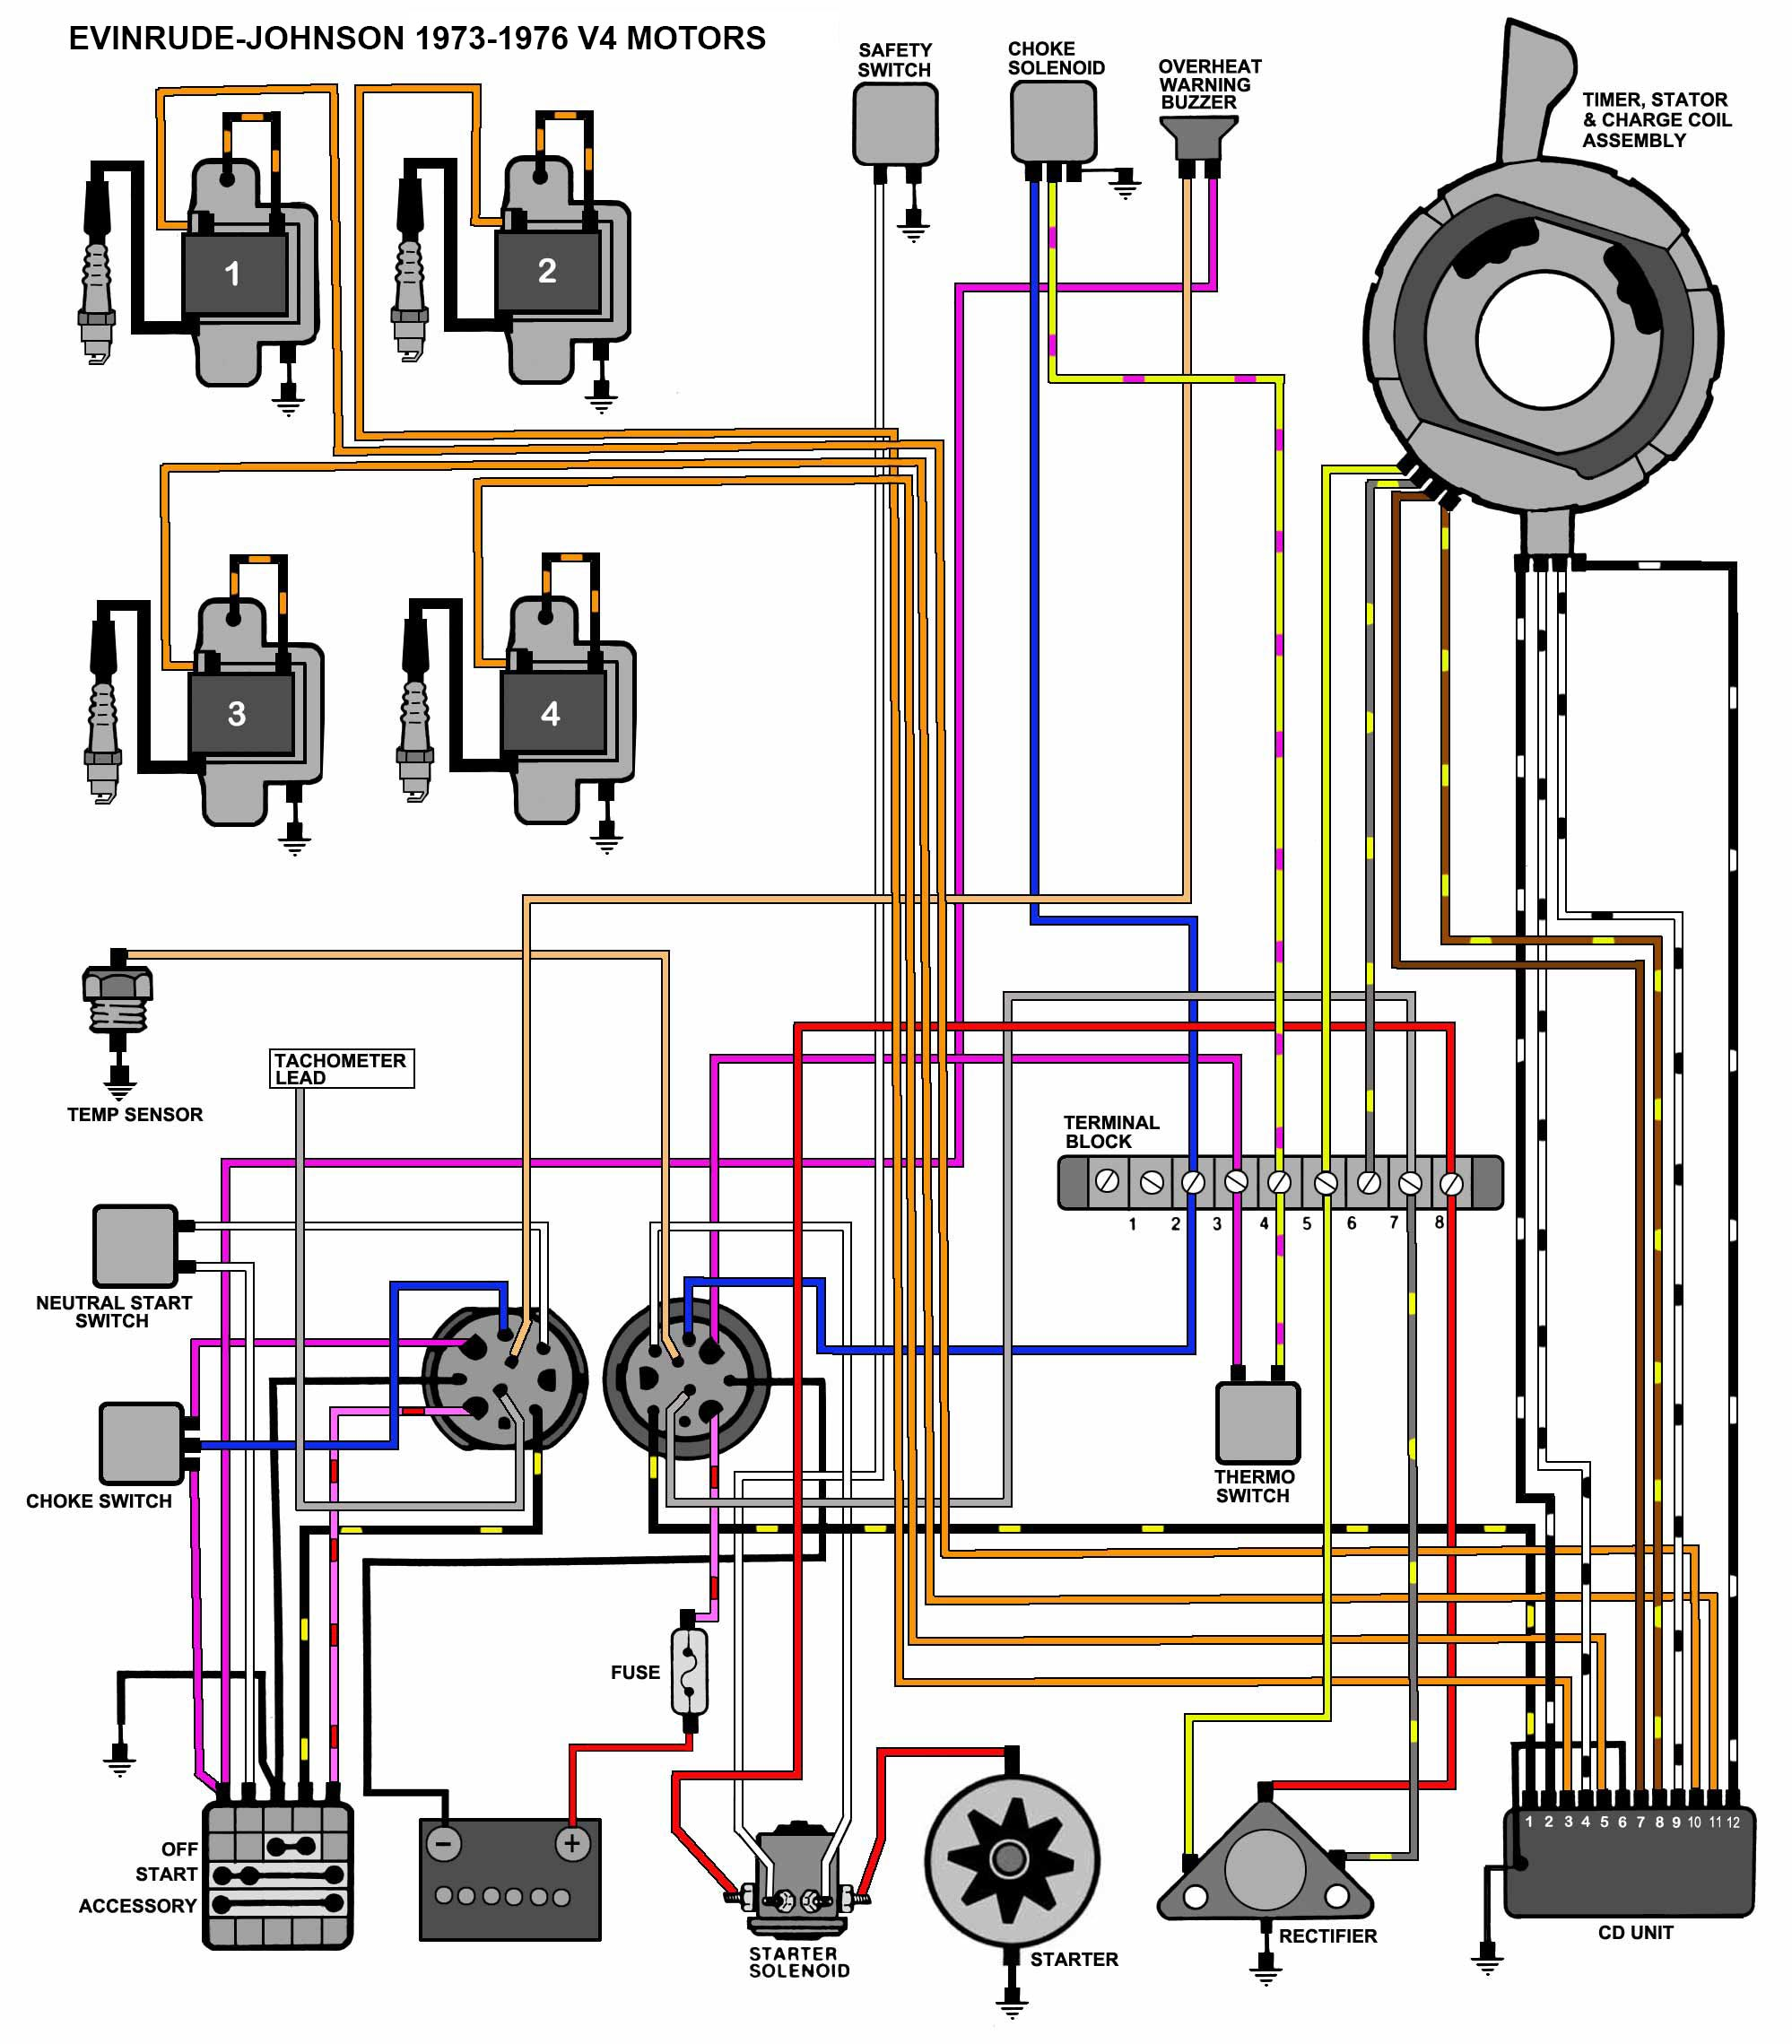 evinrude johnson outboard wiring diagrams mastertech marine rh maxrules com 1970 Johnson Outboard Motor Wiring Diagram 150 Johnson Outboard Control Wiring Diagram